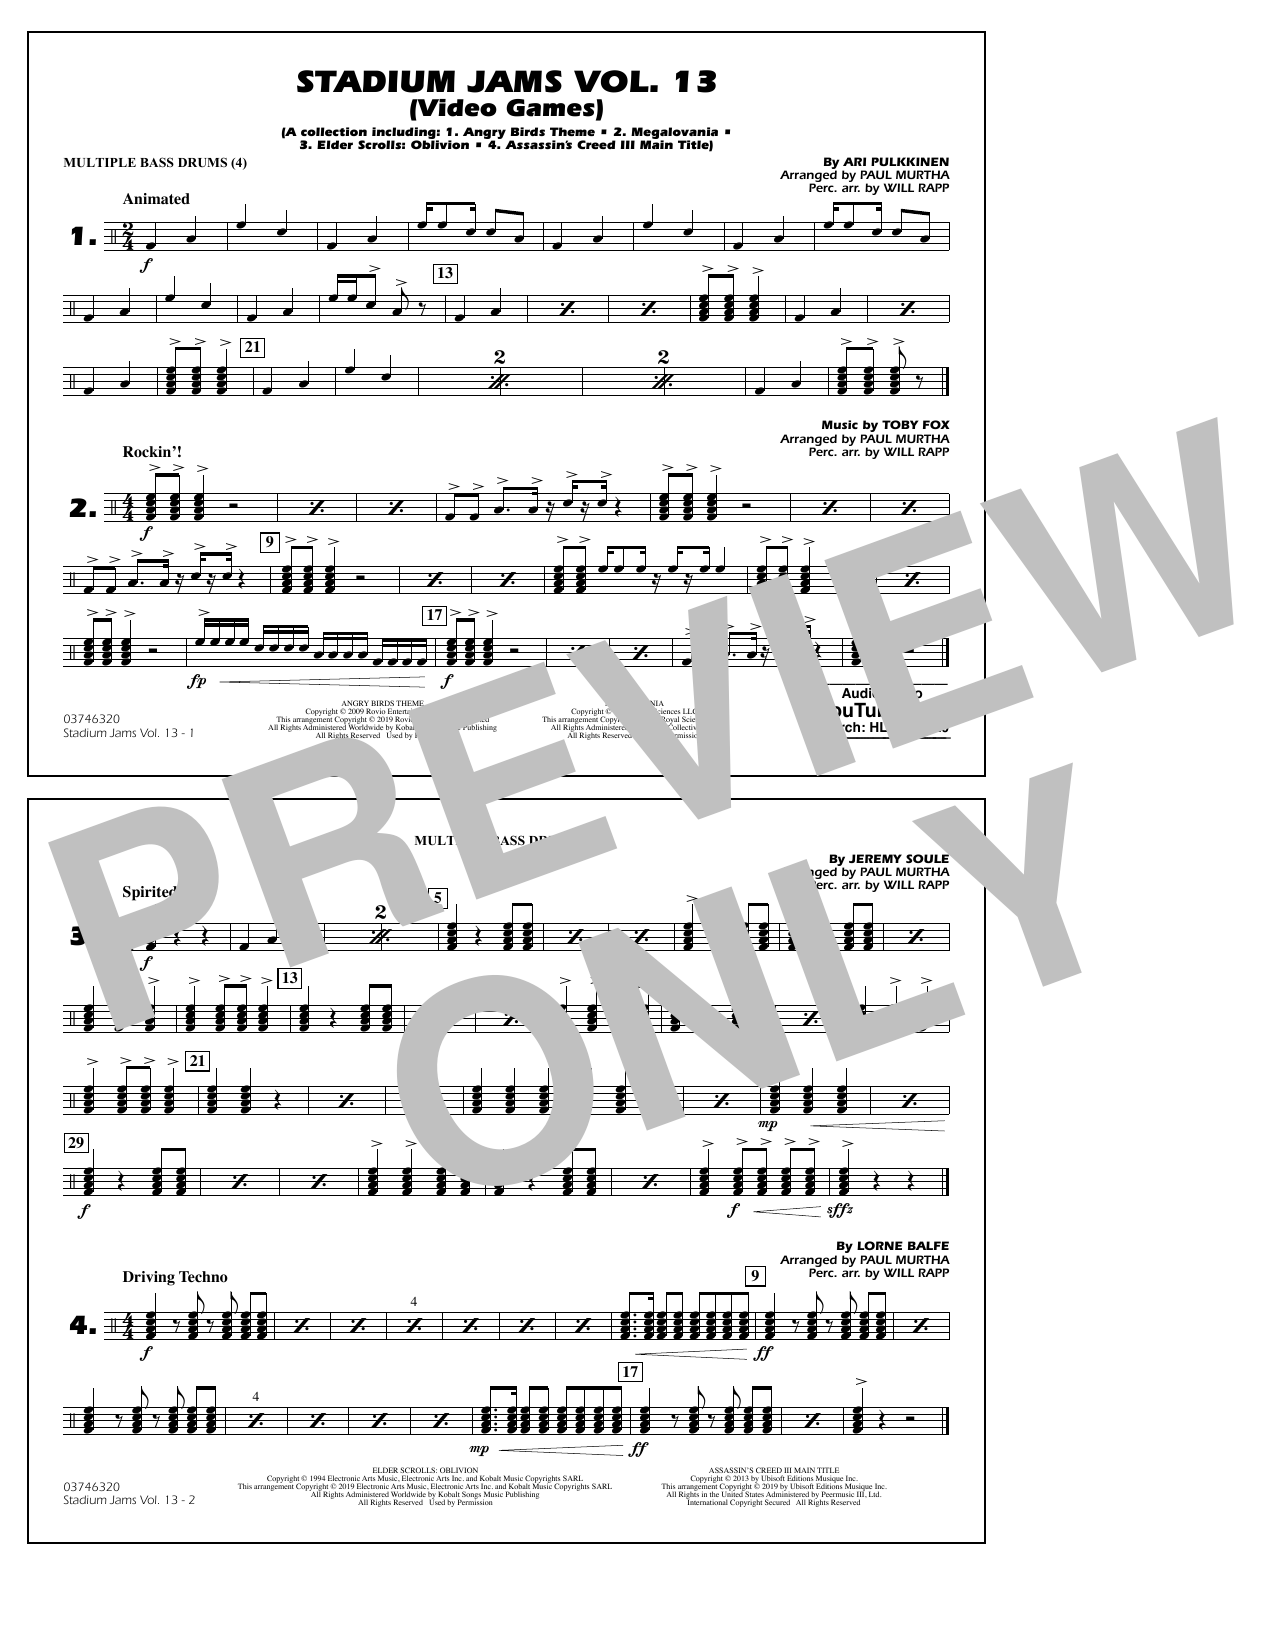 Paul Murtha & Will Rapp Stadium Jams Volume 13 (Video Games) - Multiple Bass Drums sheet music notes and chords